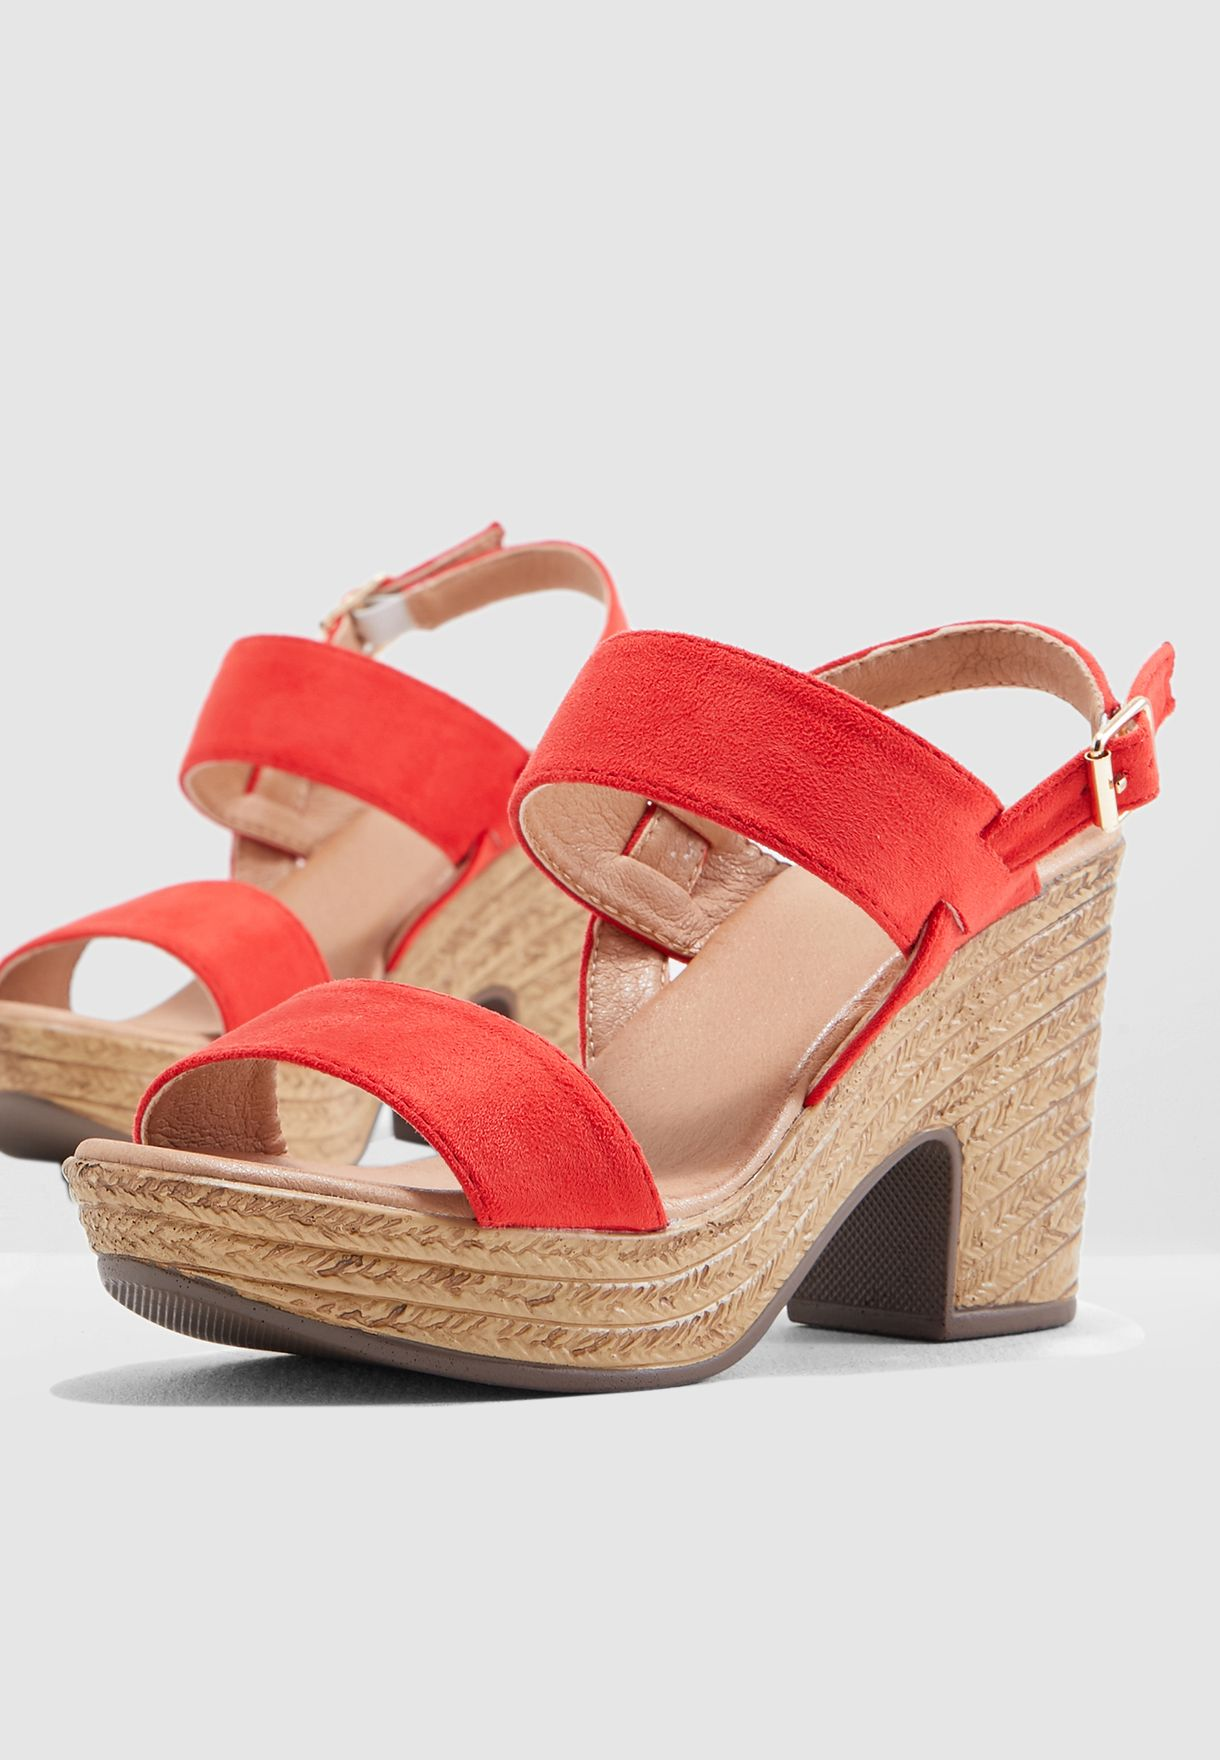 Double Strap Wedge Heel Sandal